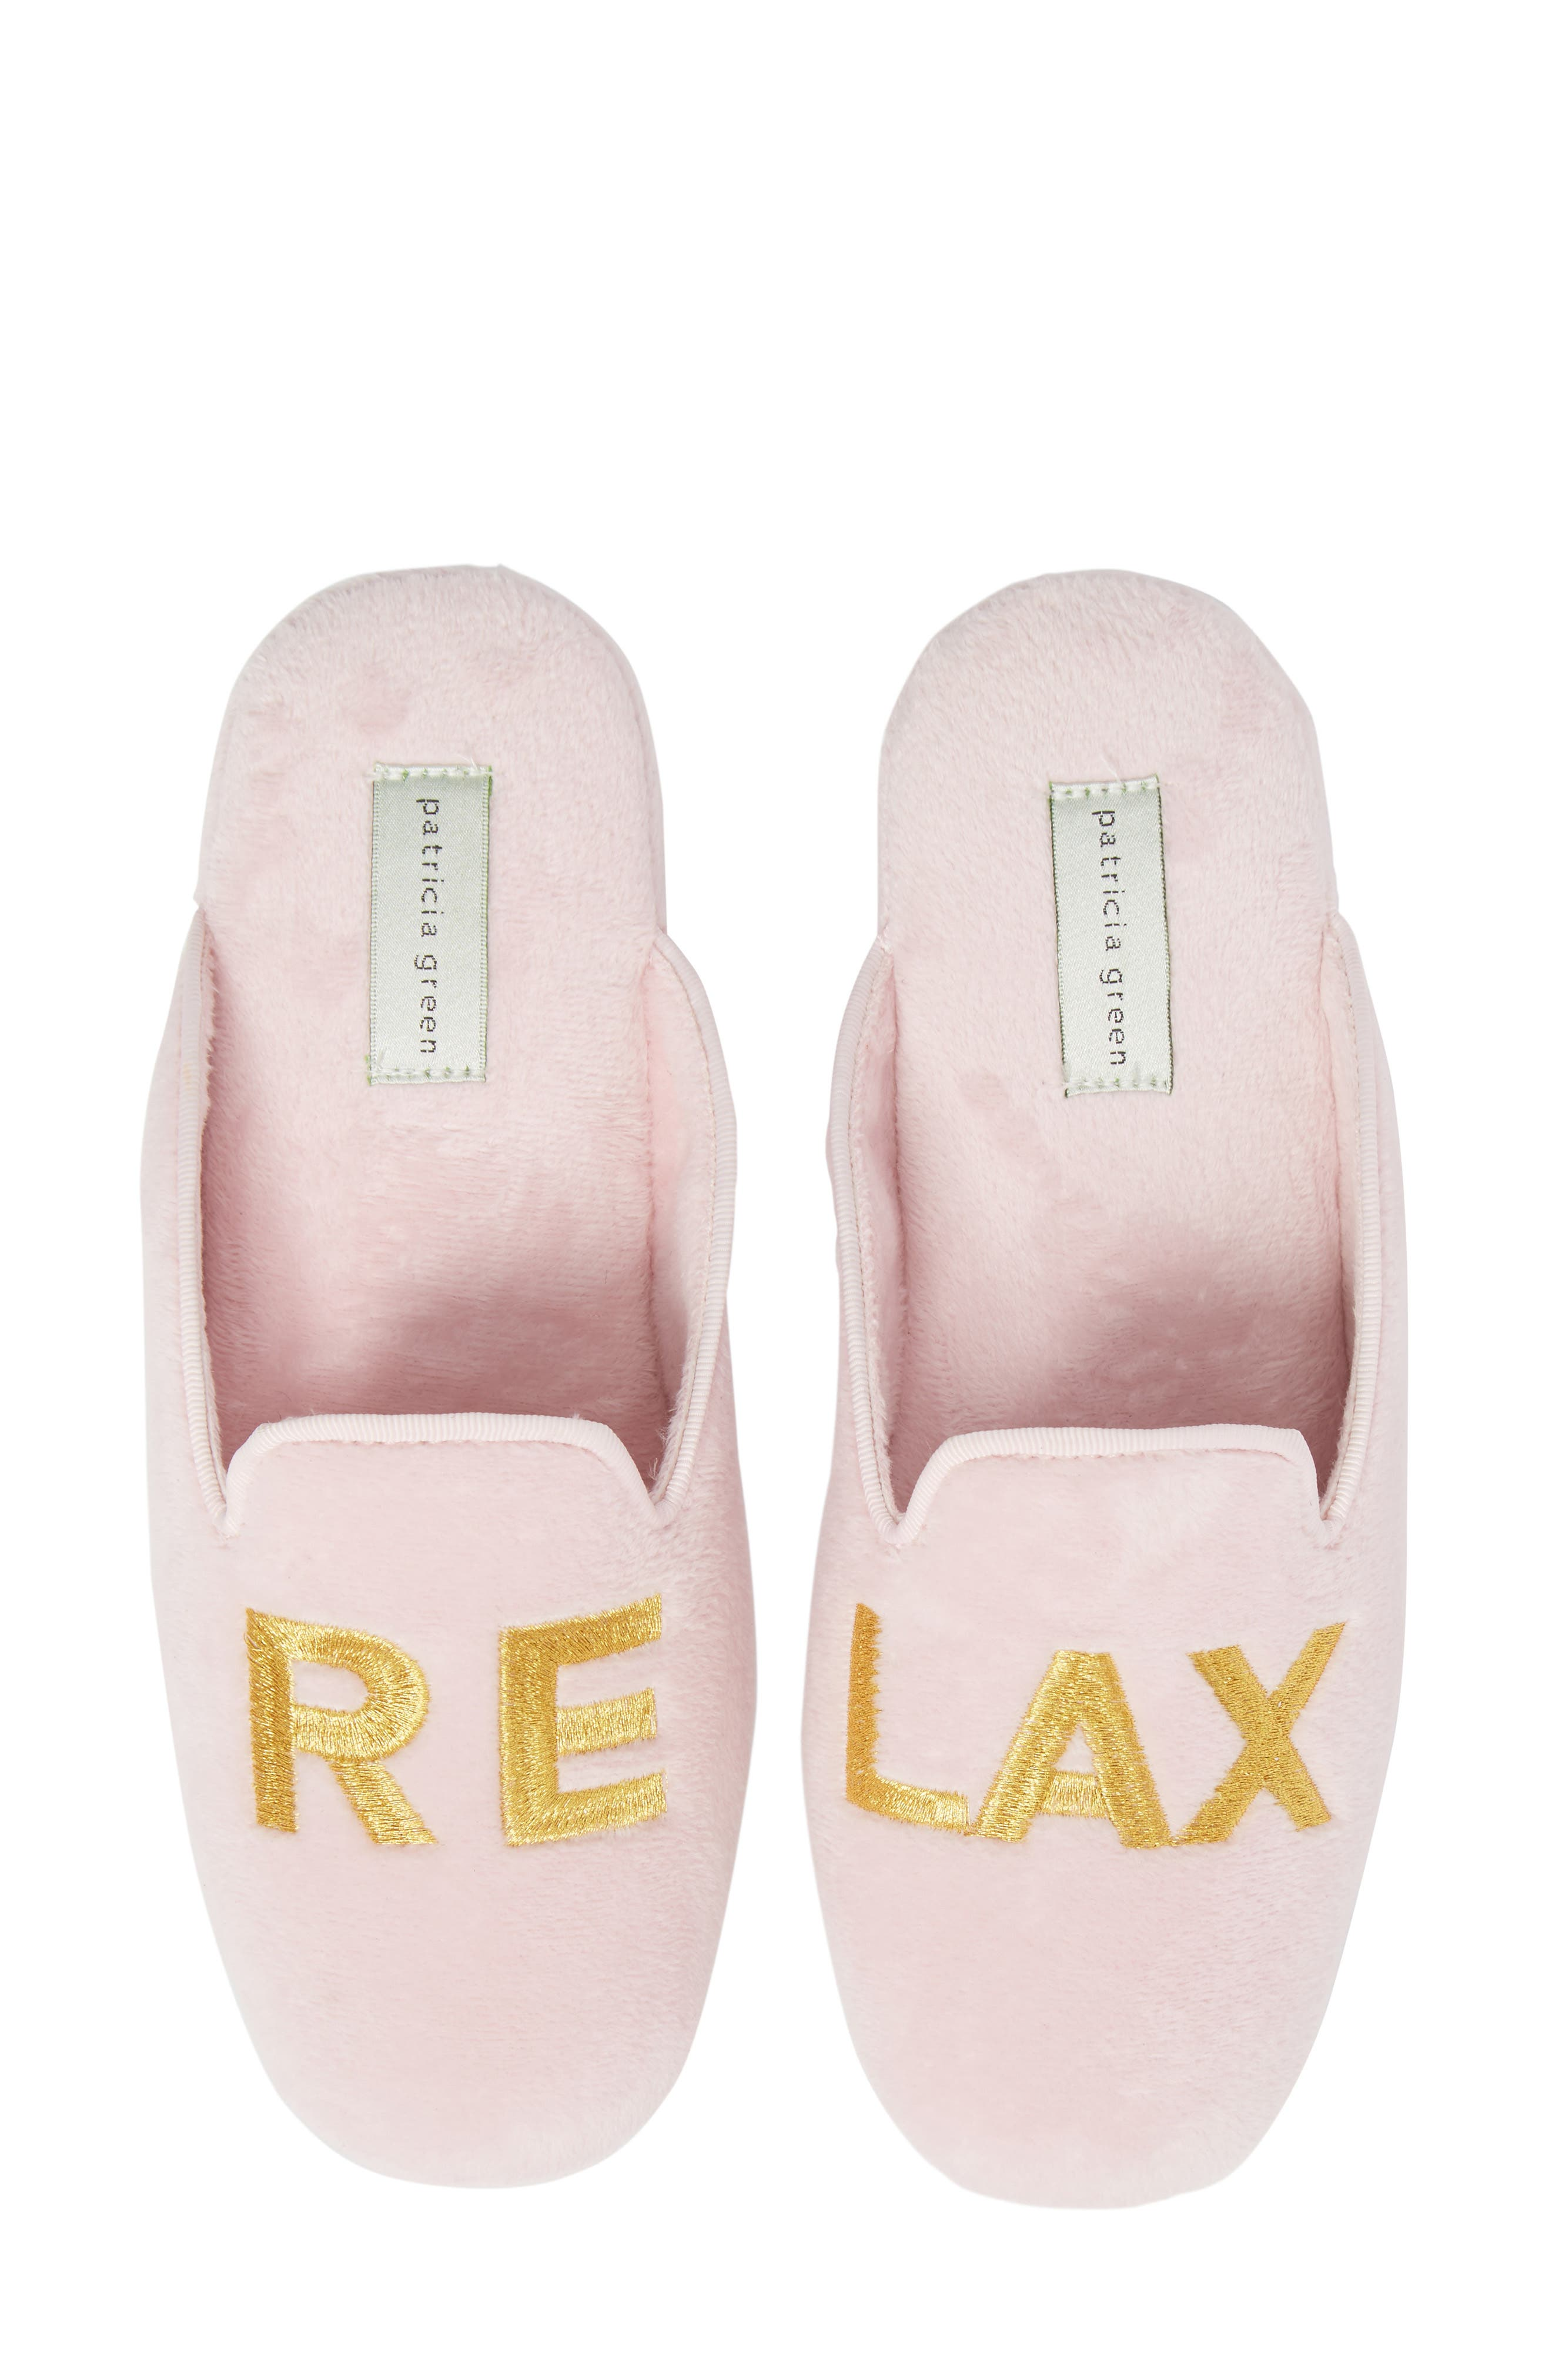 Relax Embroidered Mule Slipper,                         Main,                         color, PINK FABRIC